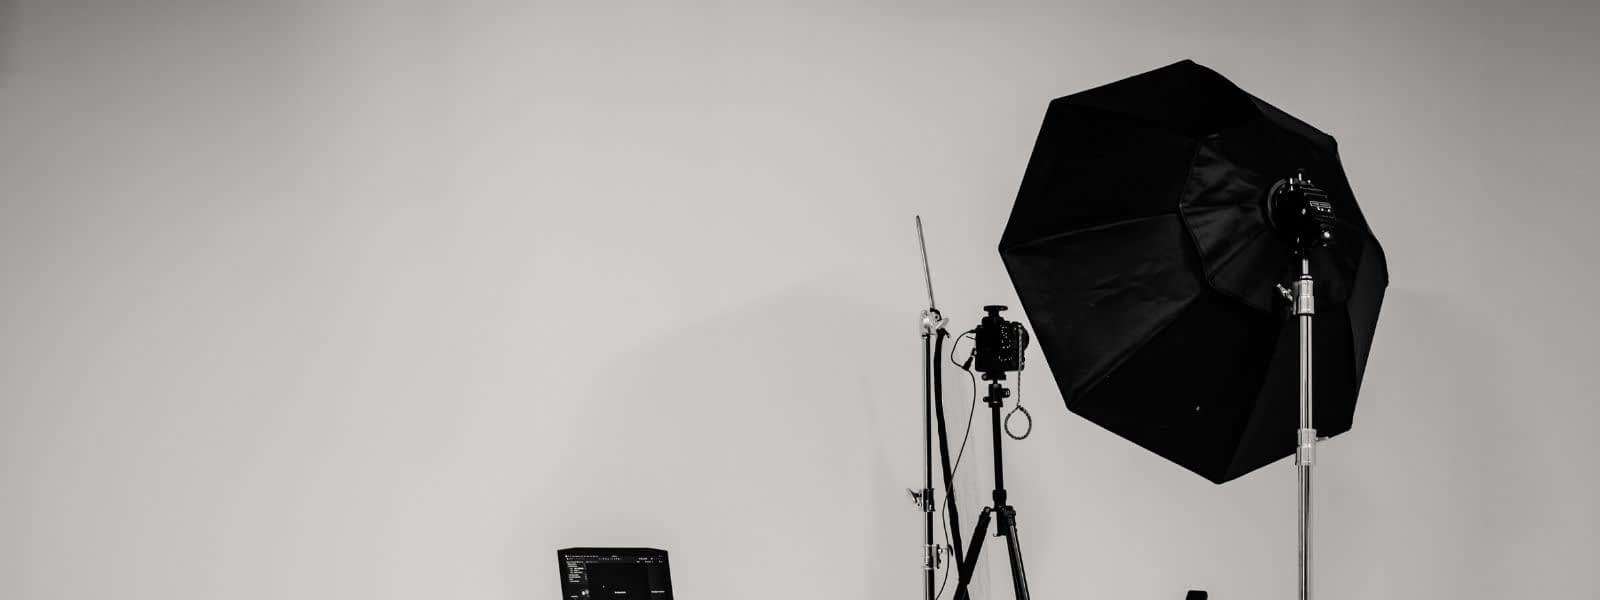 Softboxes in a photo studio